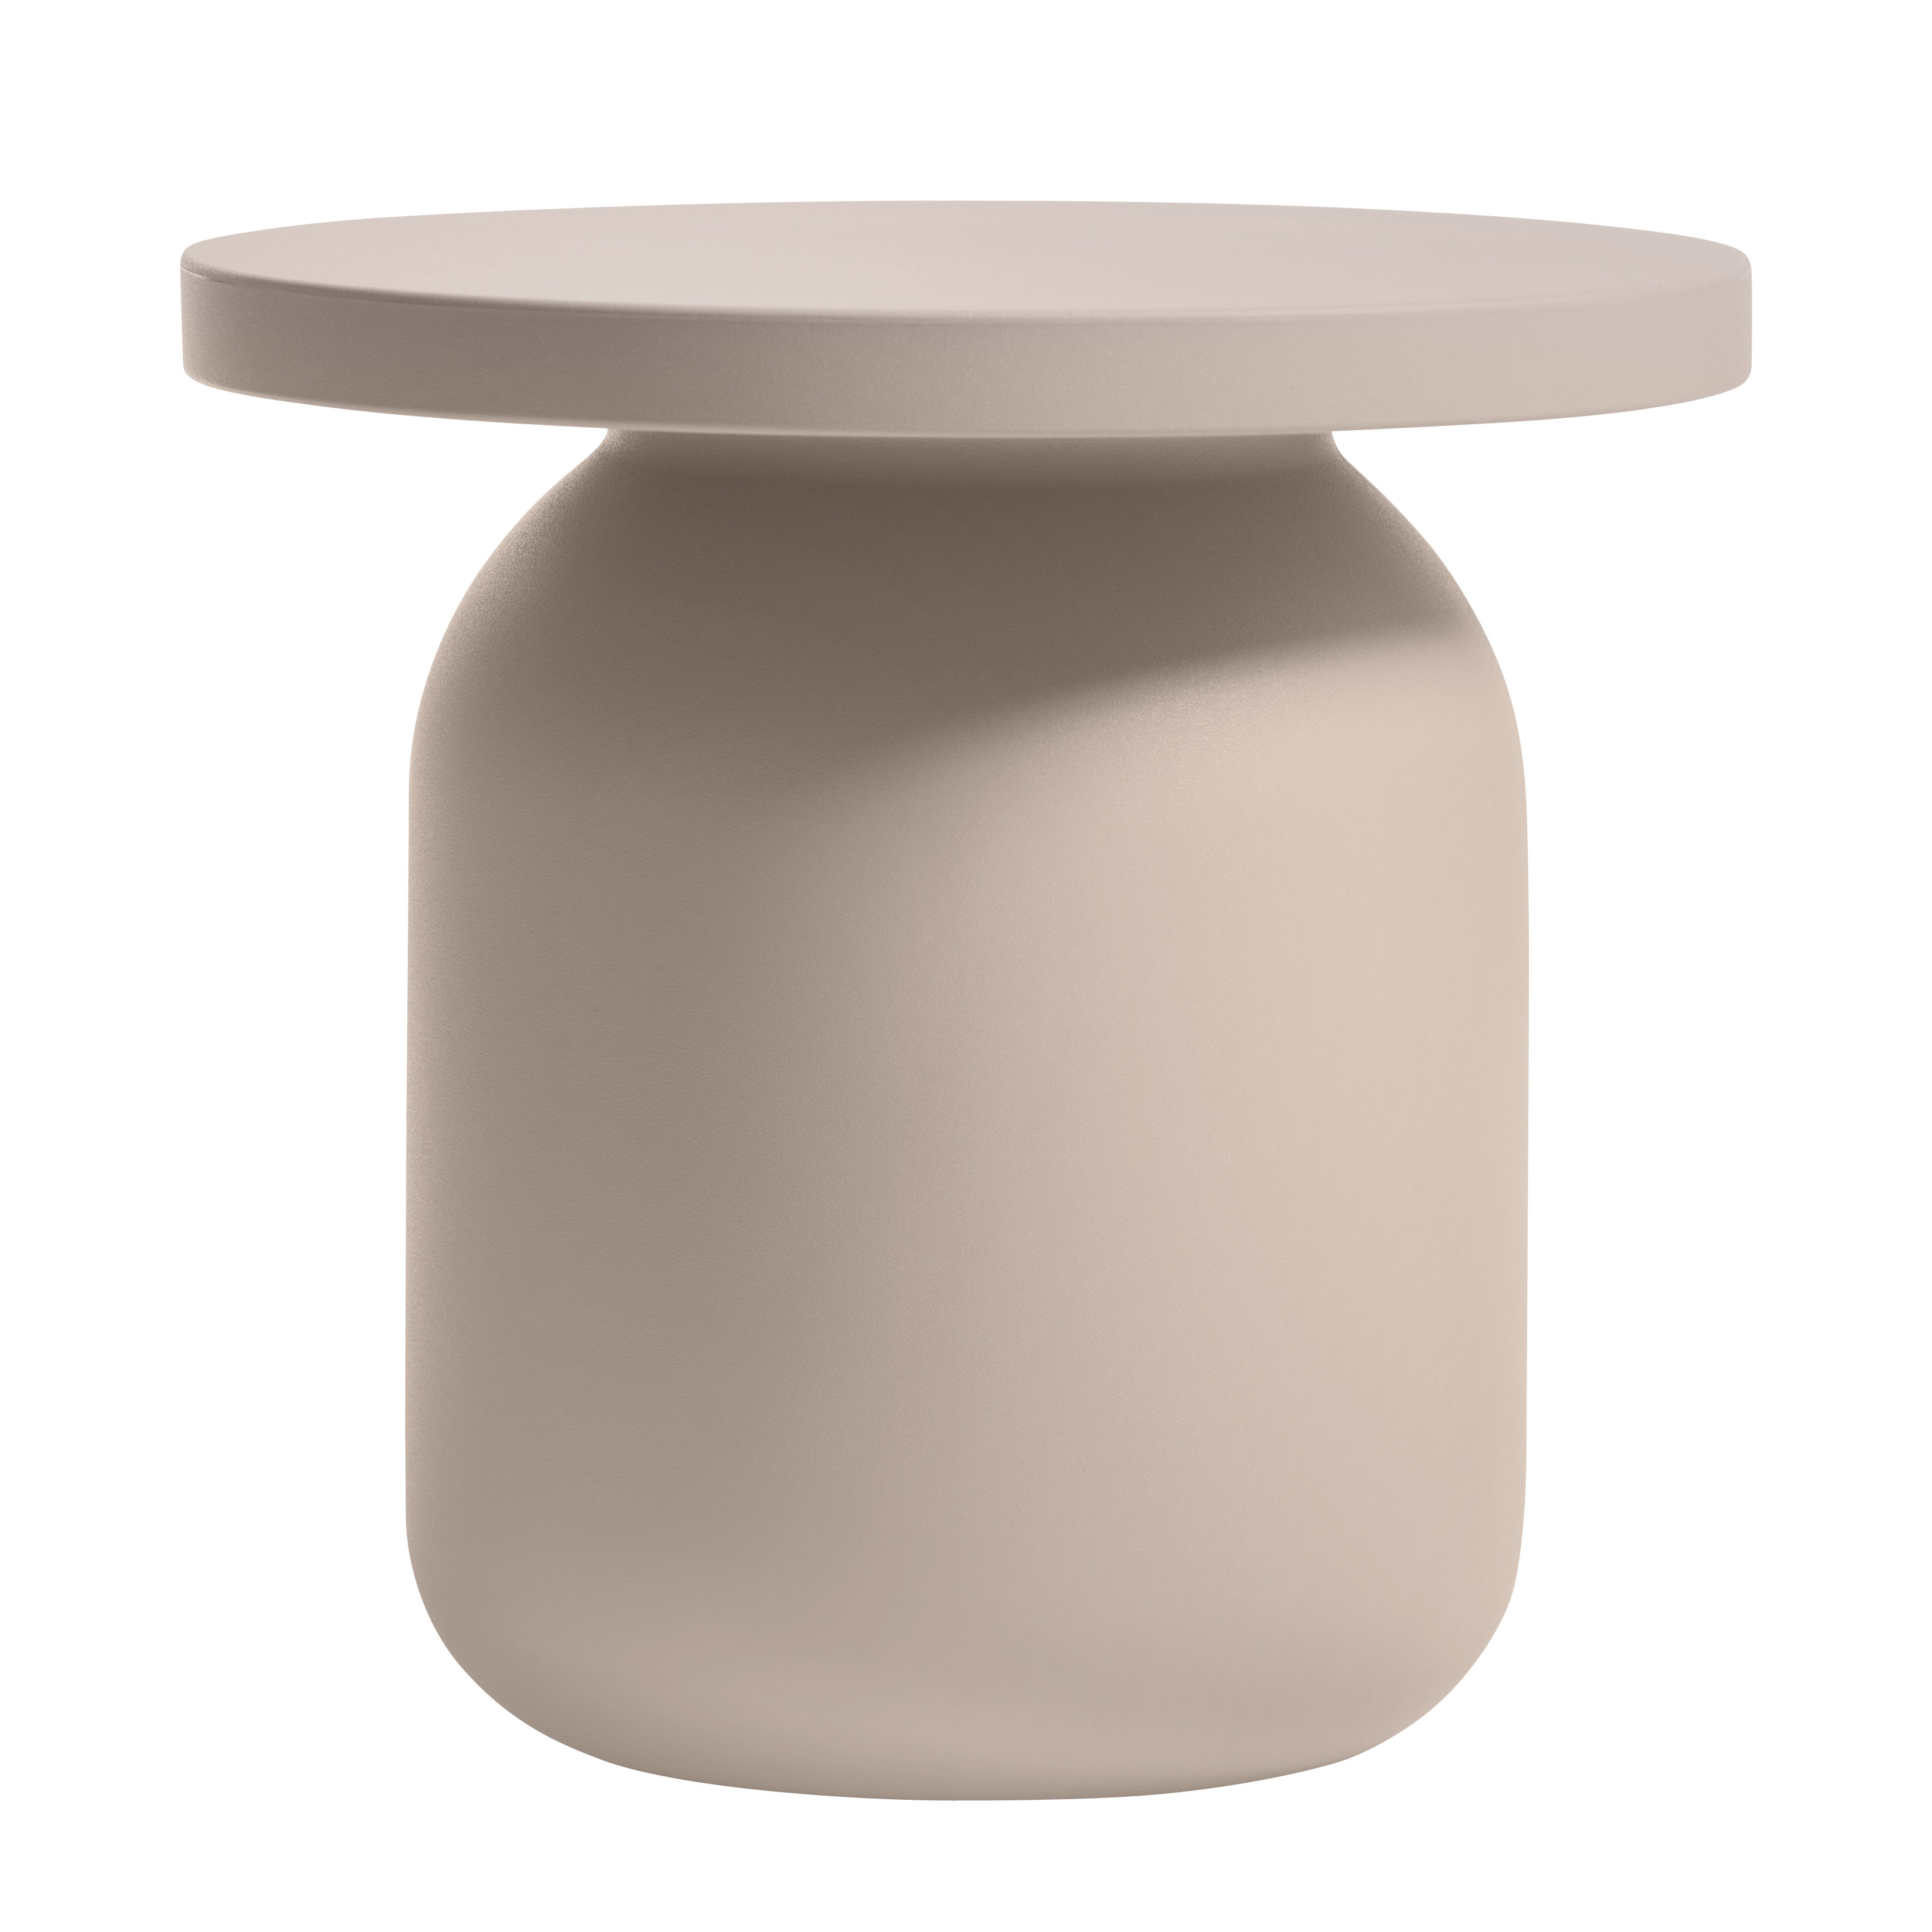 Juju End table Stool Taupe by Serralunga